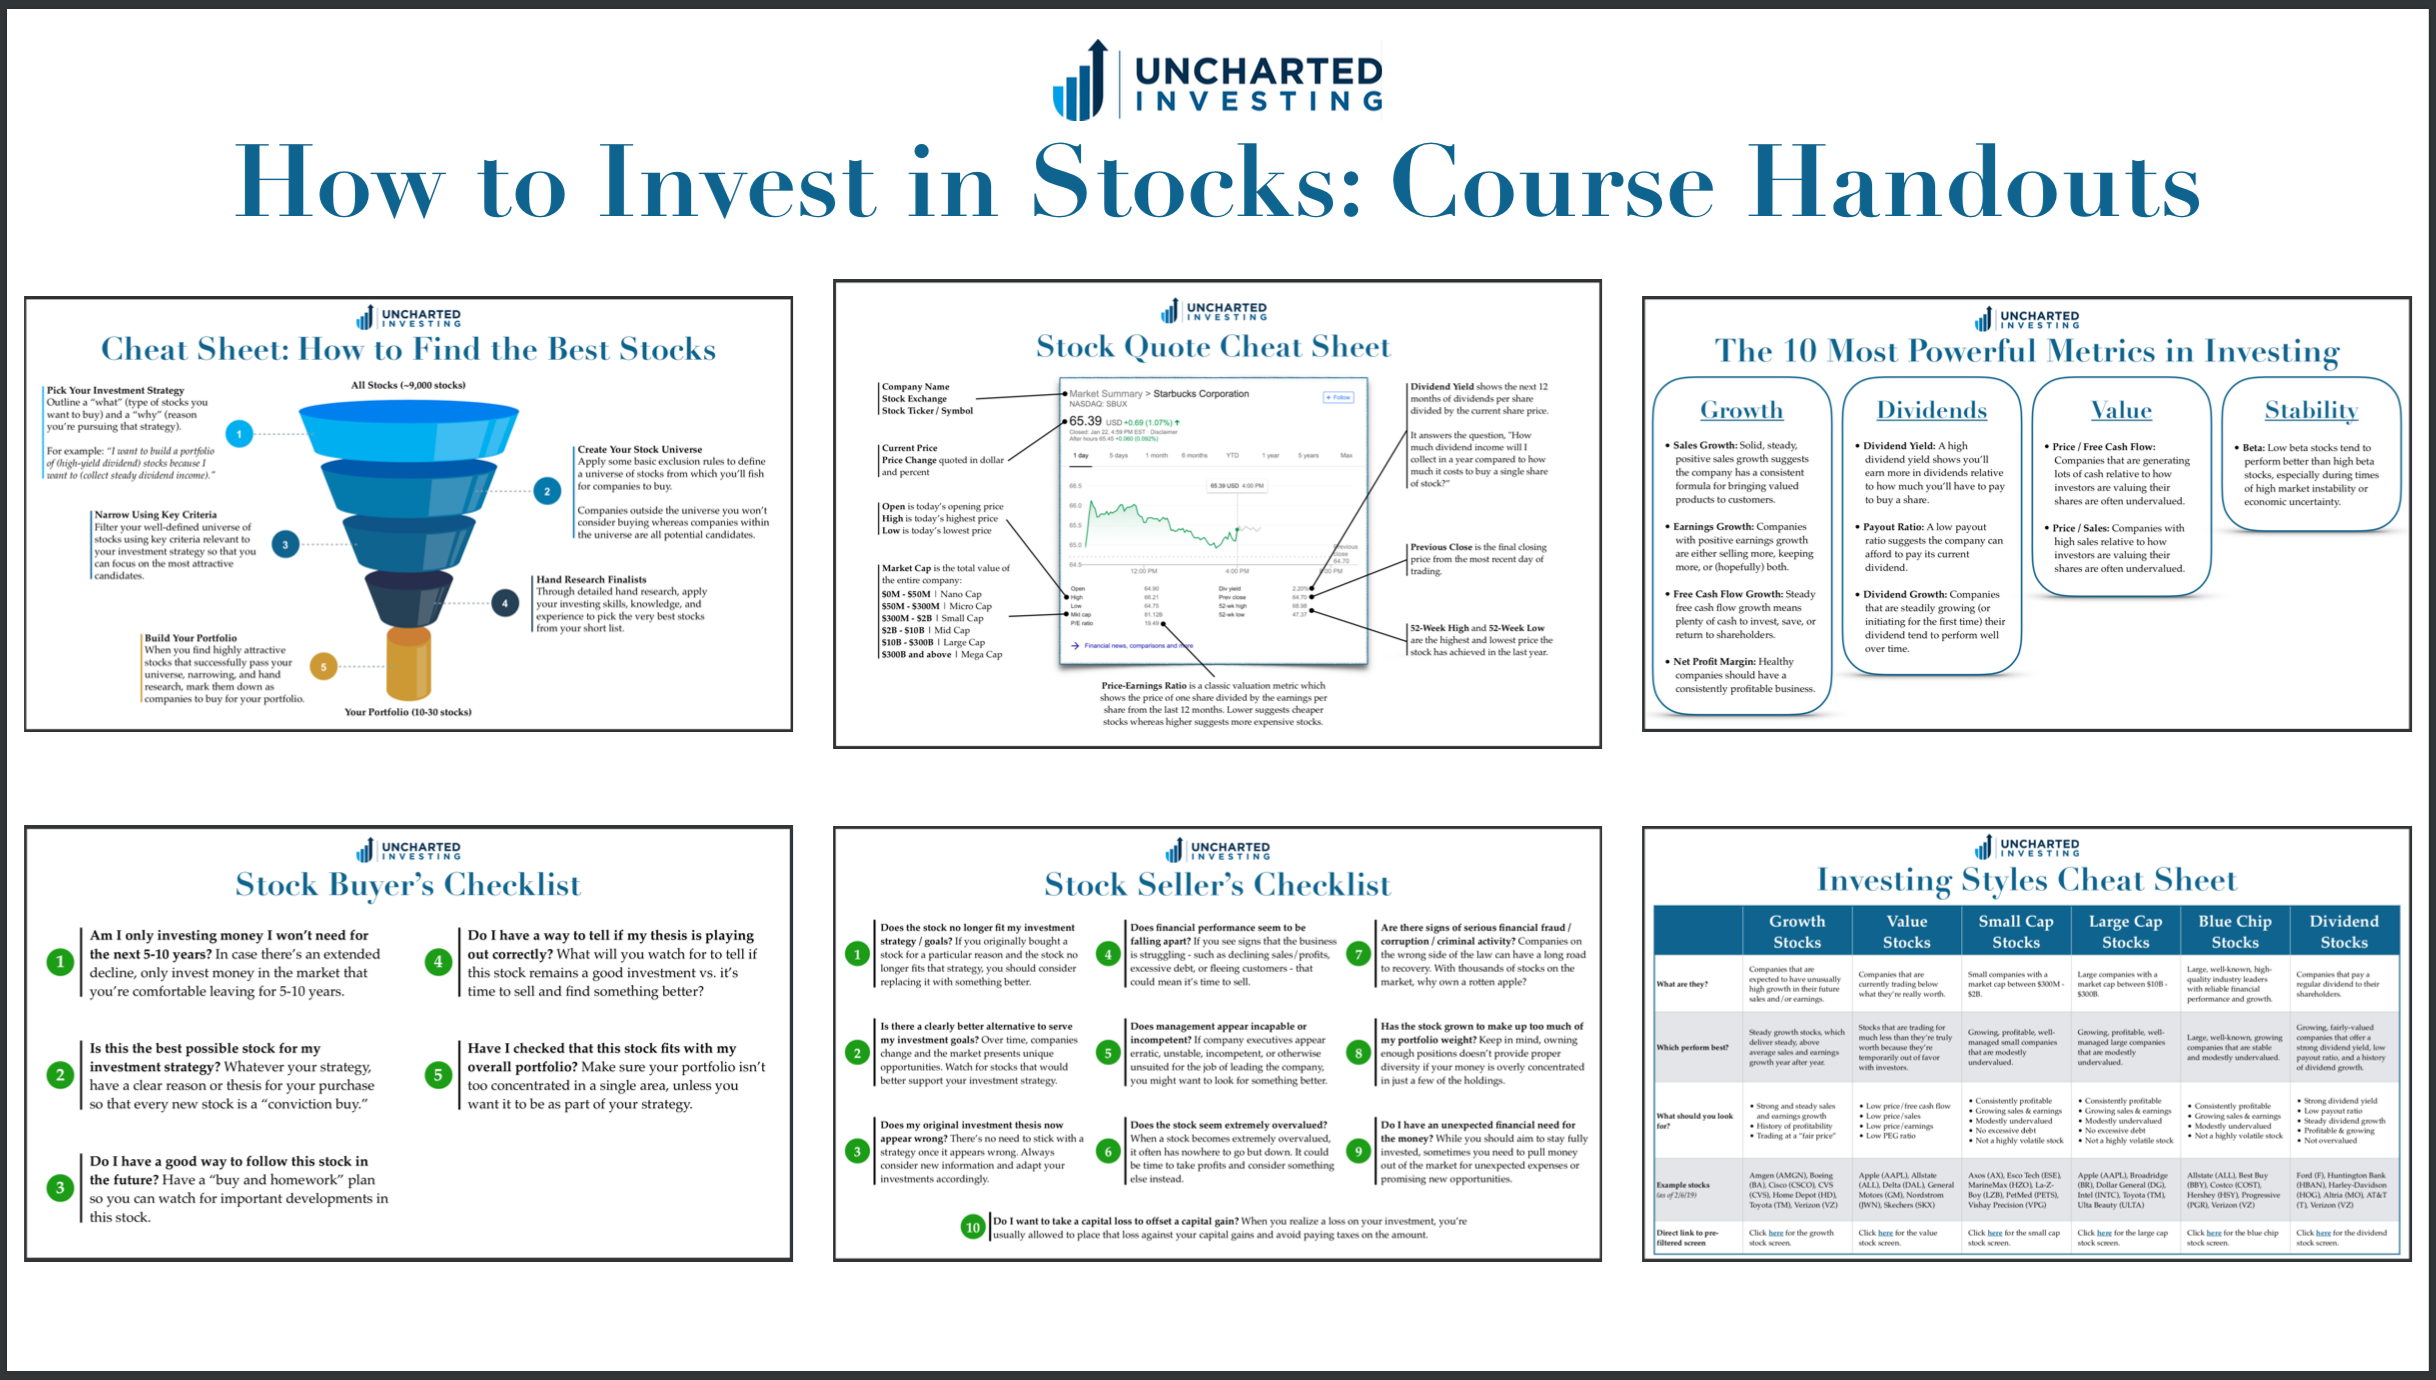 Free Course: How to Invest in Stocks, Make Money, and Avoid Mistakes